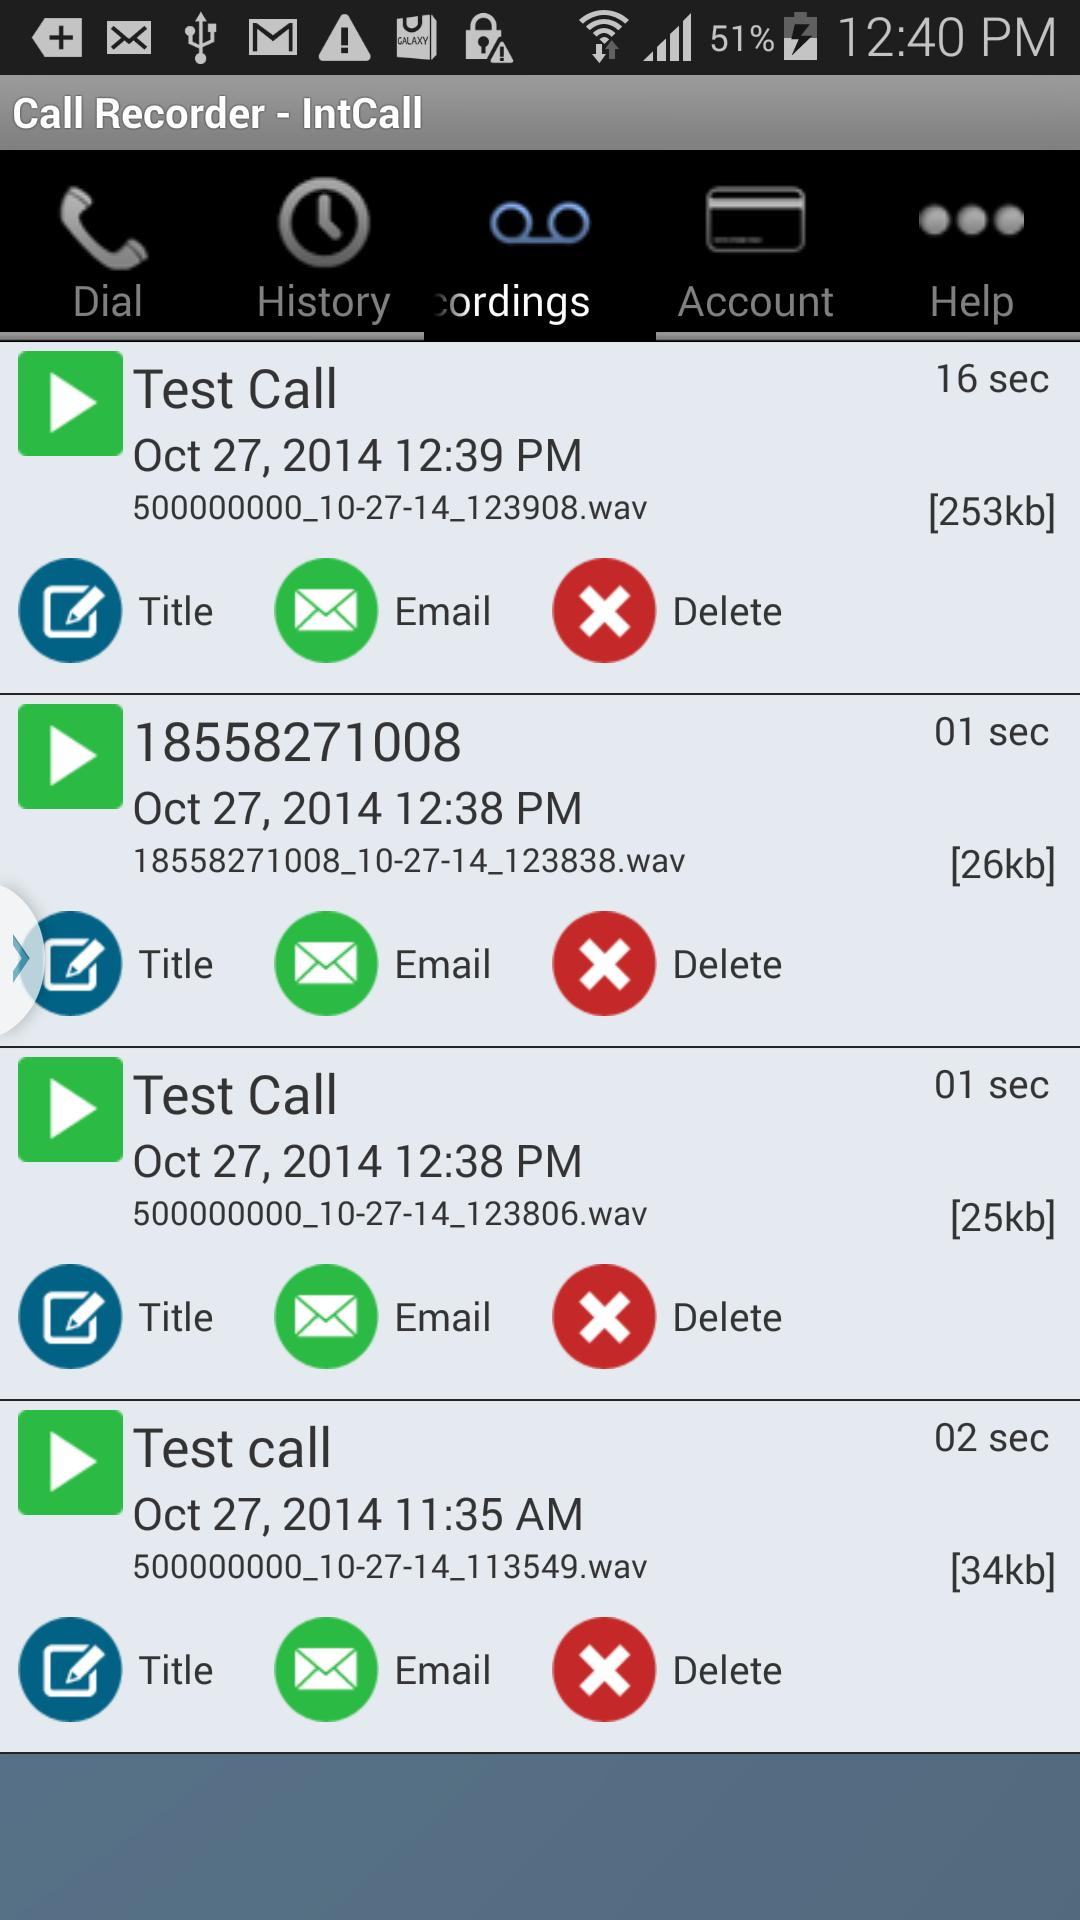 call recorder intcall mod apk free download